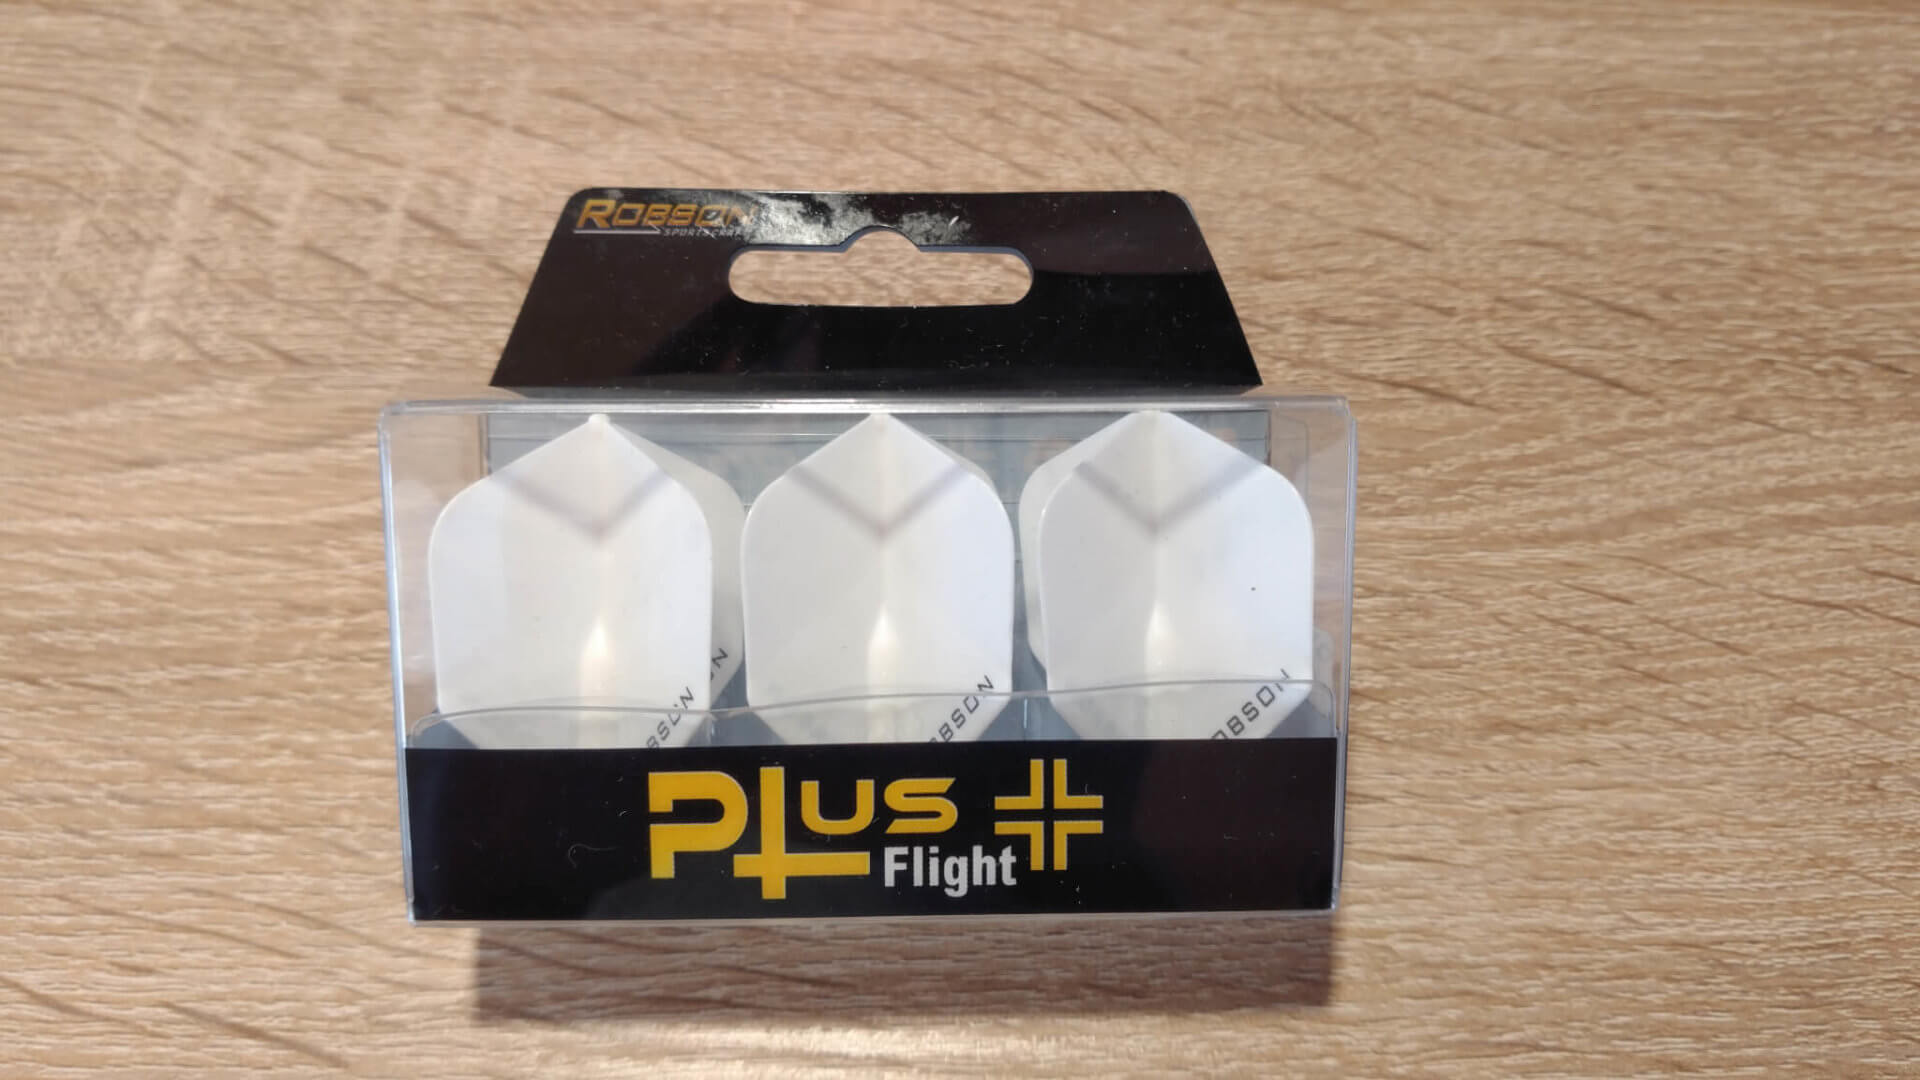 Bull's NL - Robson Plus Flights - Standard